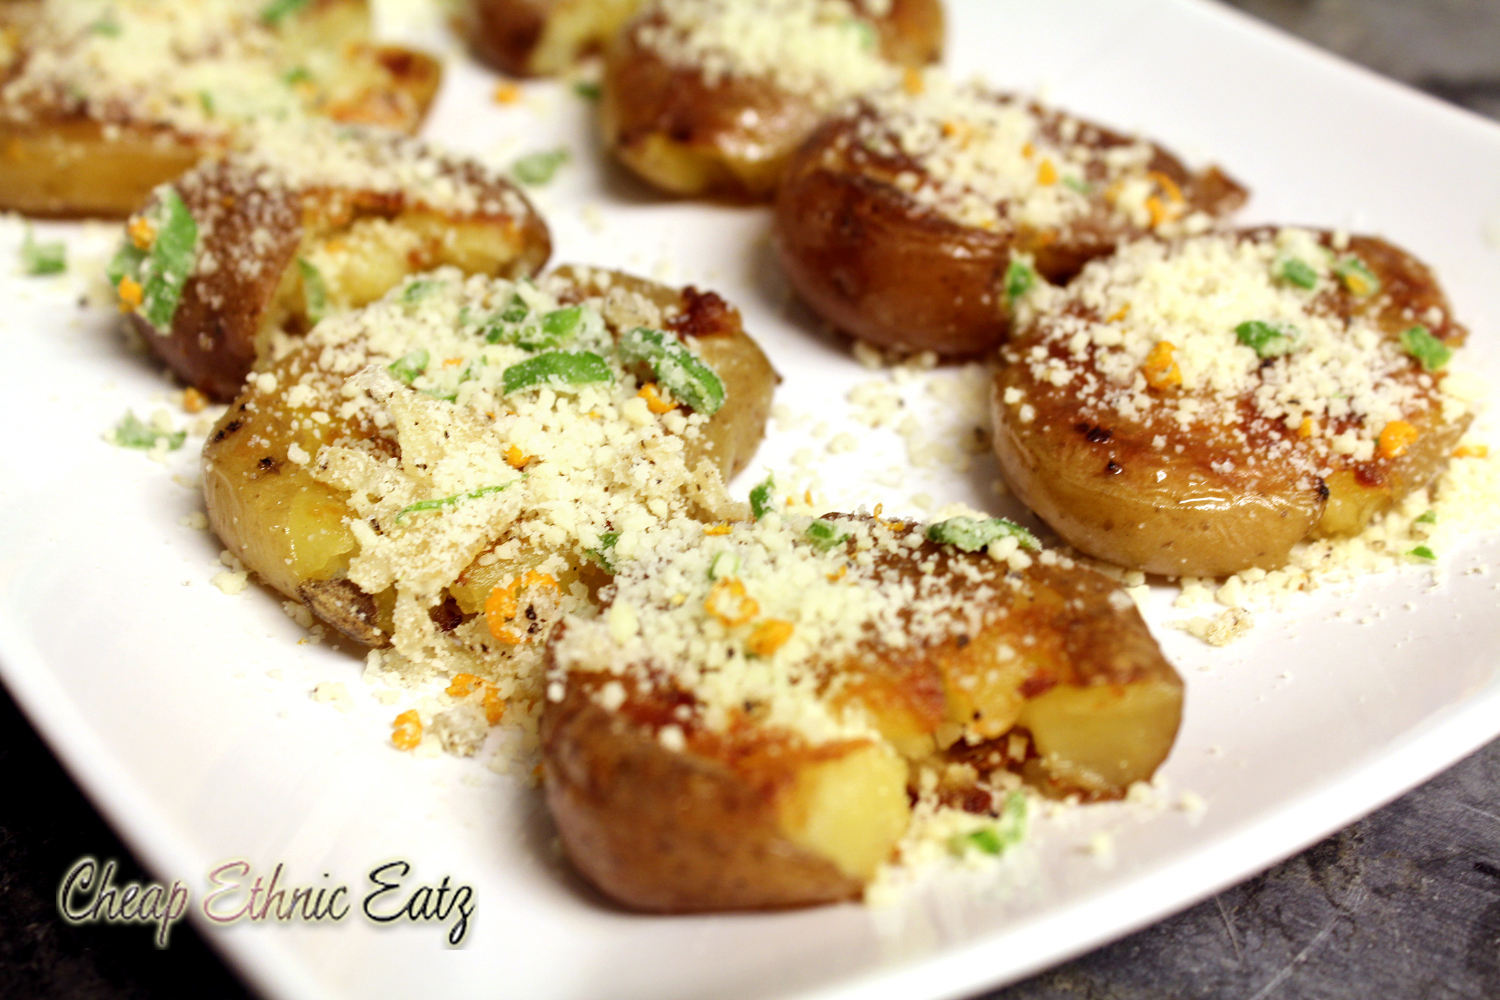 Pan Fried Smashed Potatoes inspired by A Christmas Story by Cheap Ethnic Eatz - A Christmas Story #FoodnFlix roundup via allroadsleadtothe.kitchen